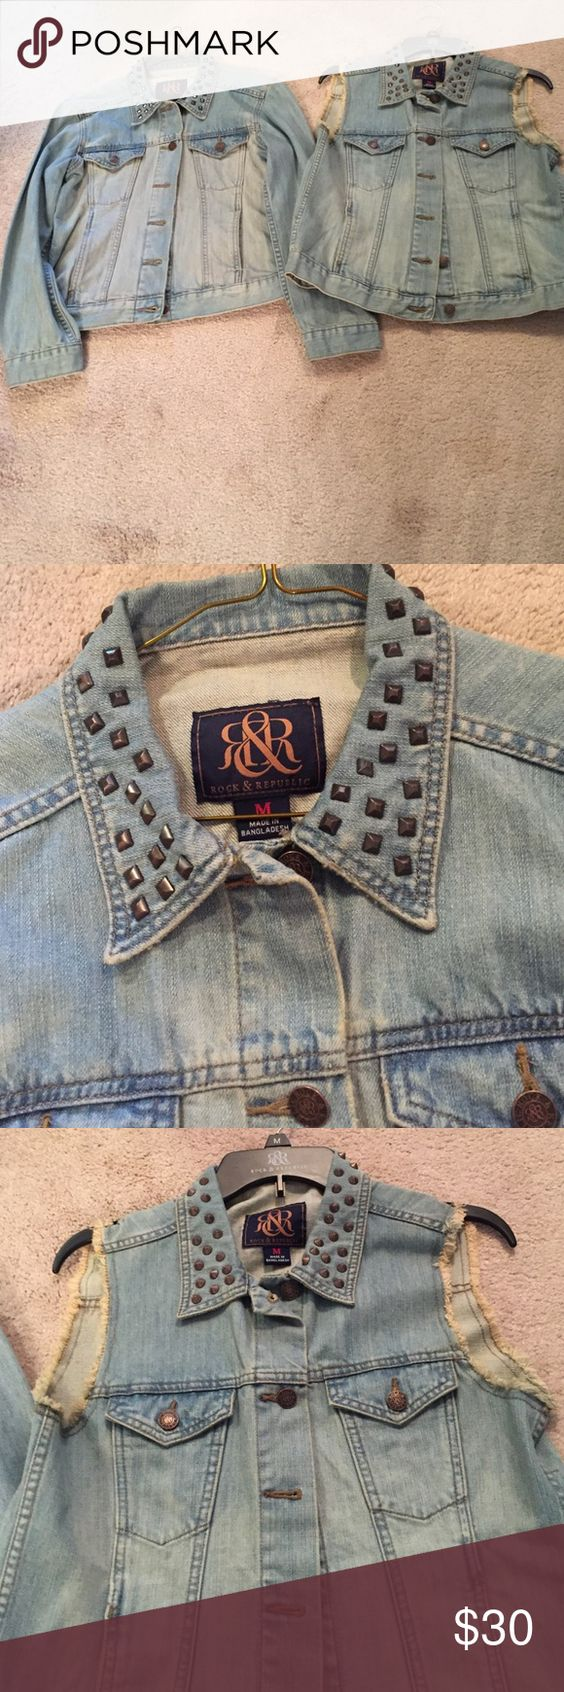 Rock & Republic blue jean jacket & vest Rock & Republic matching blue jean jacket & Vest with gold studs around the collar.  Very cute set, never worn.  Will sell separately if you don't want both. Rock & Republic Jackets & Coats Jean Jackets